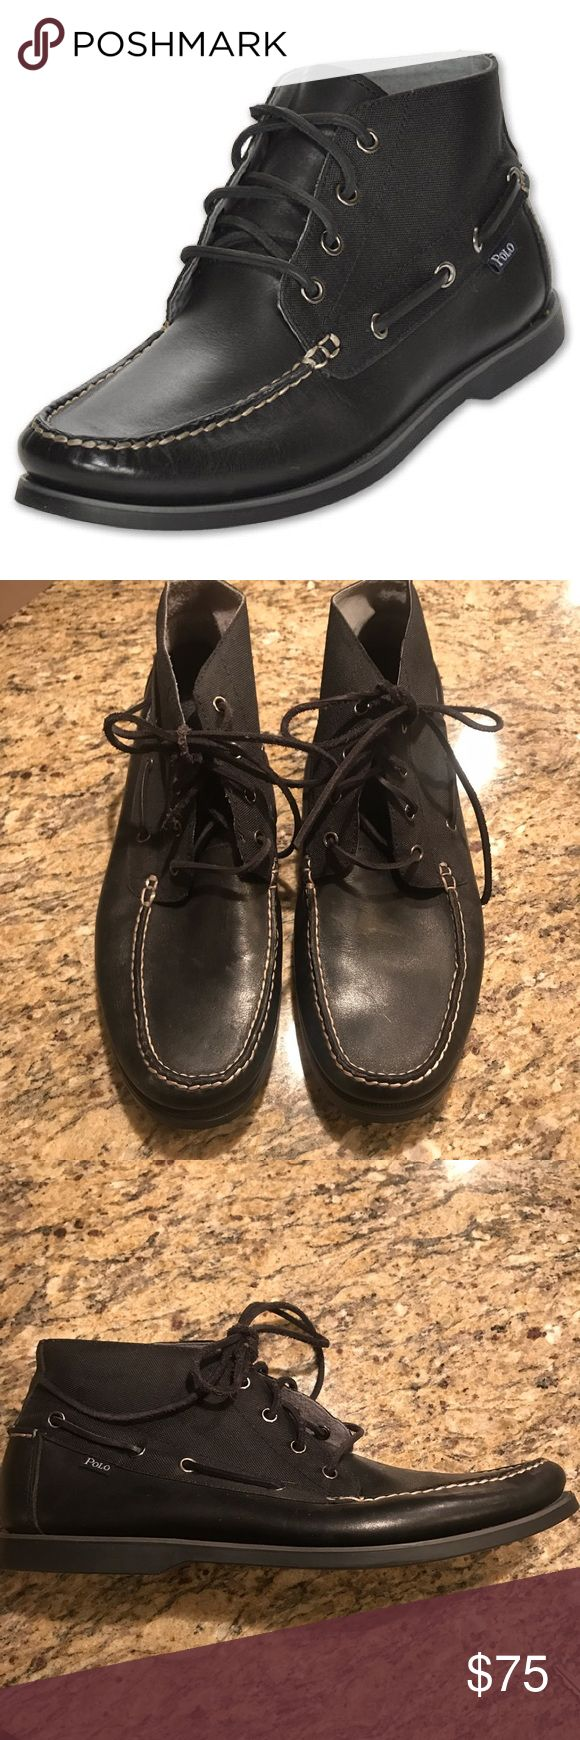 Ralph Lauren Black Polo Brawley Mid High Boots Ralph Lauren Black Polo Brawley Mid High Boots- worn once! New condition! Polo by Ralph Lauren Shoes Chukka Boots